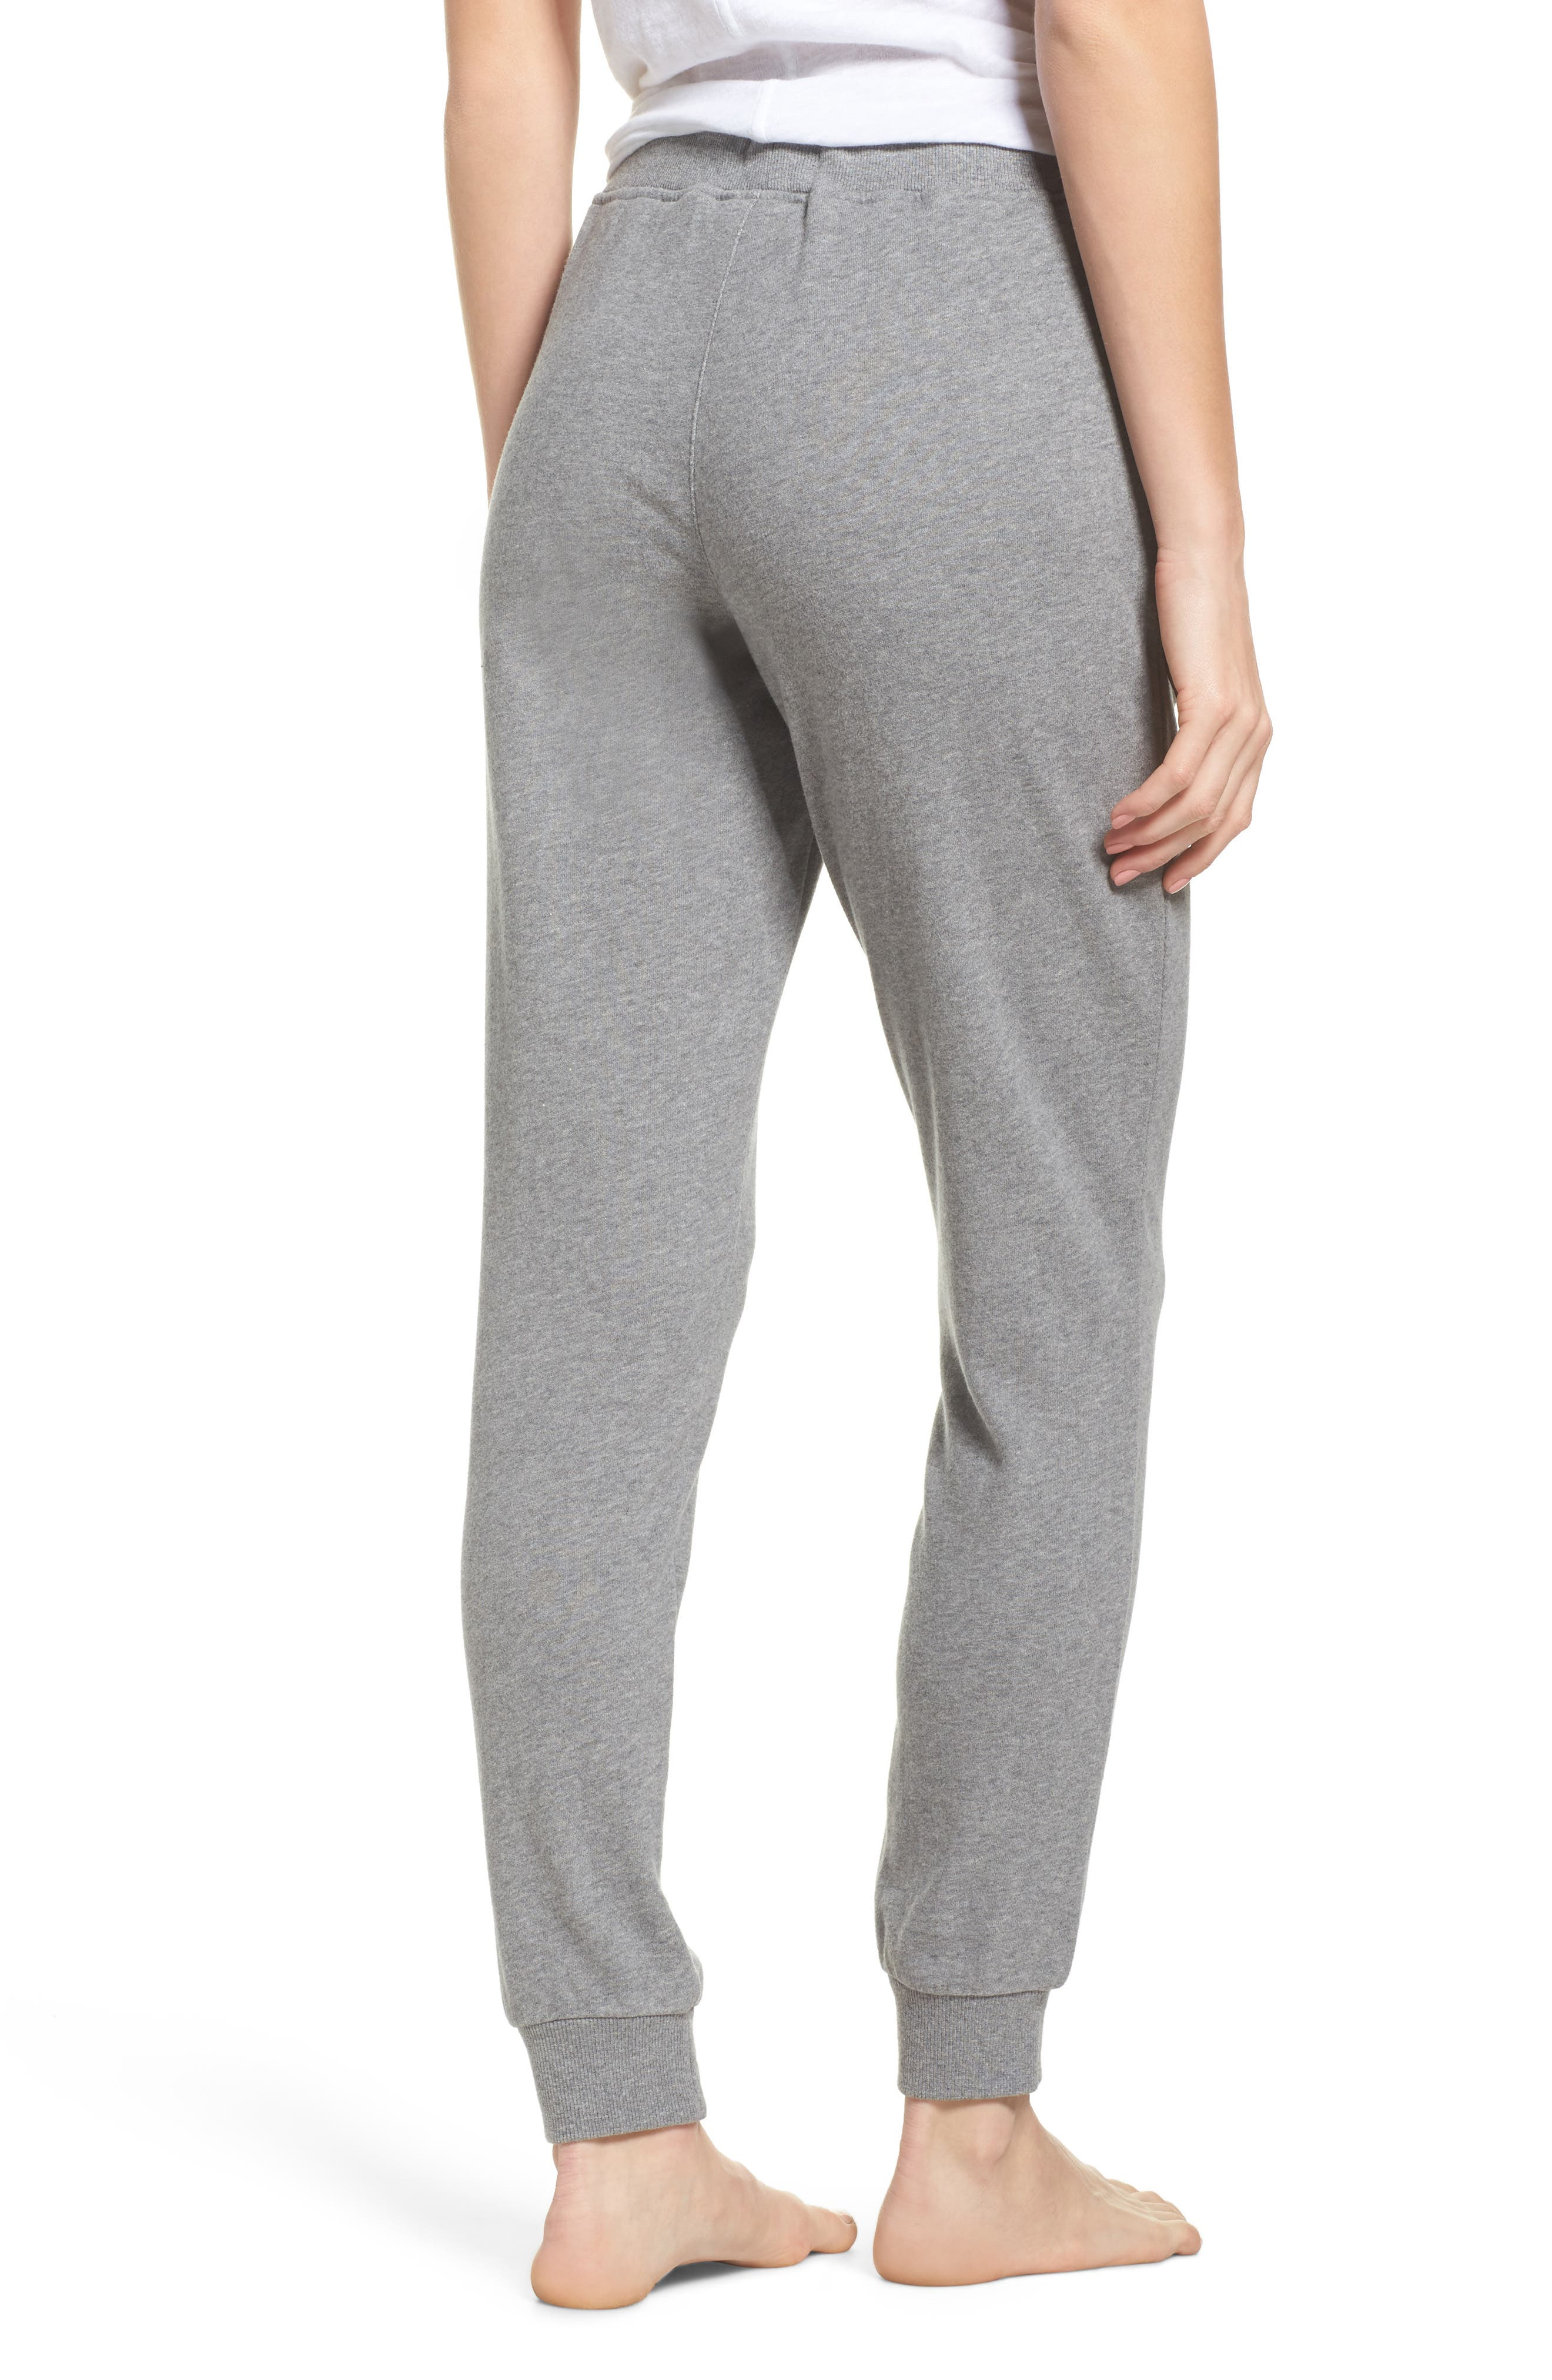 Babe Jogger Pants,                             Alternate thumbnail 2, color,                             Heather Grey